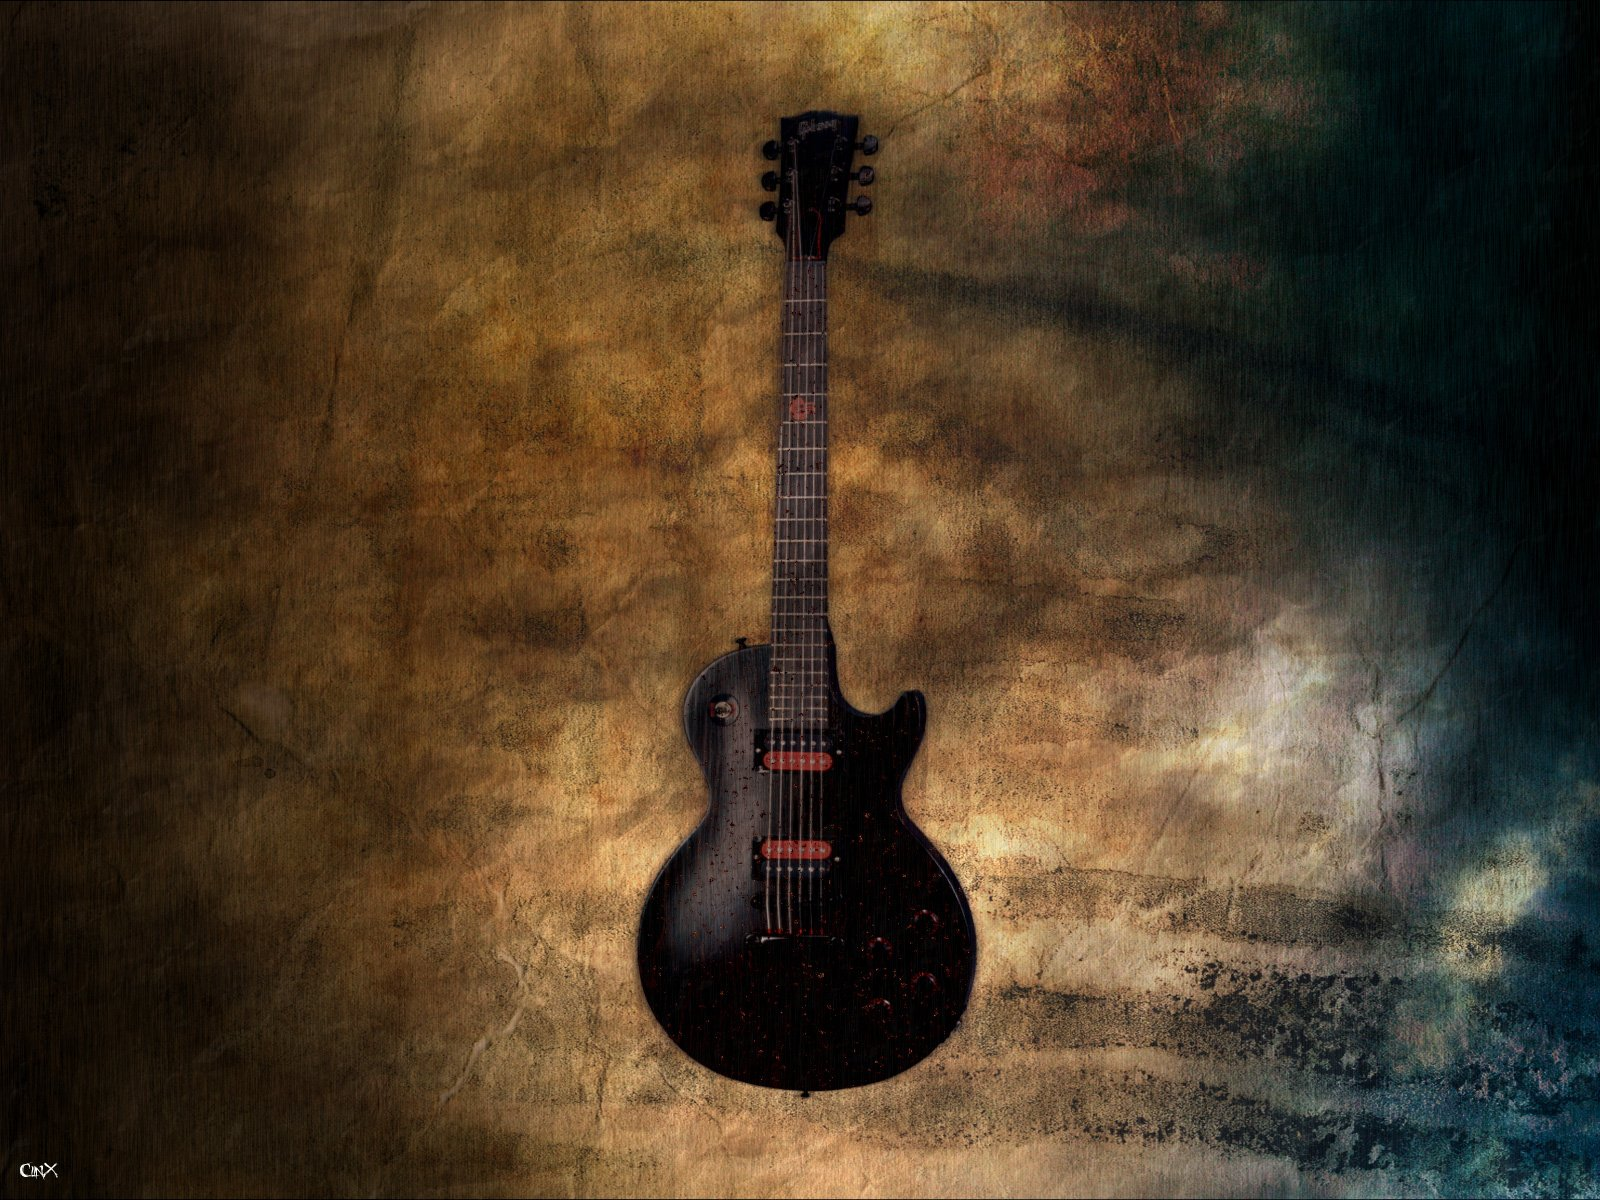 692 Guitar Hd Wallpapers Background Images Wallpaper Abyss